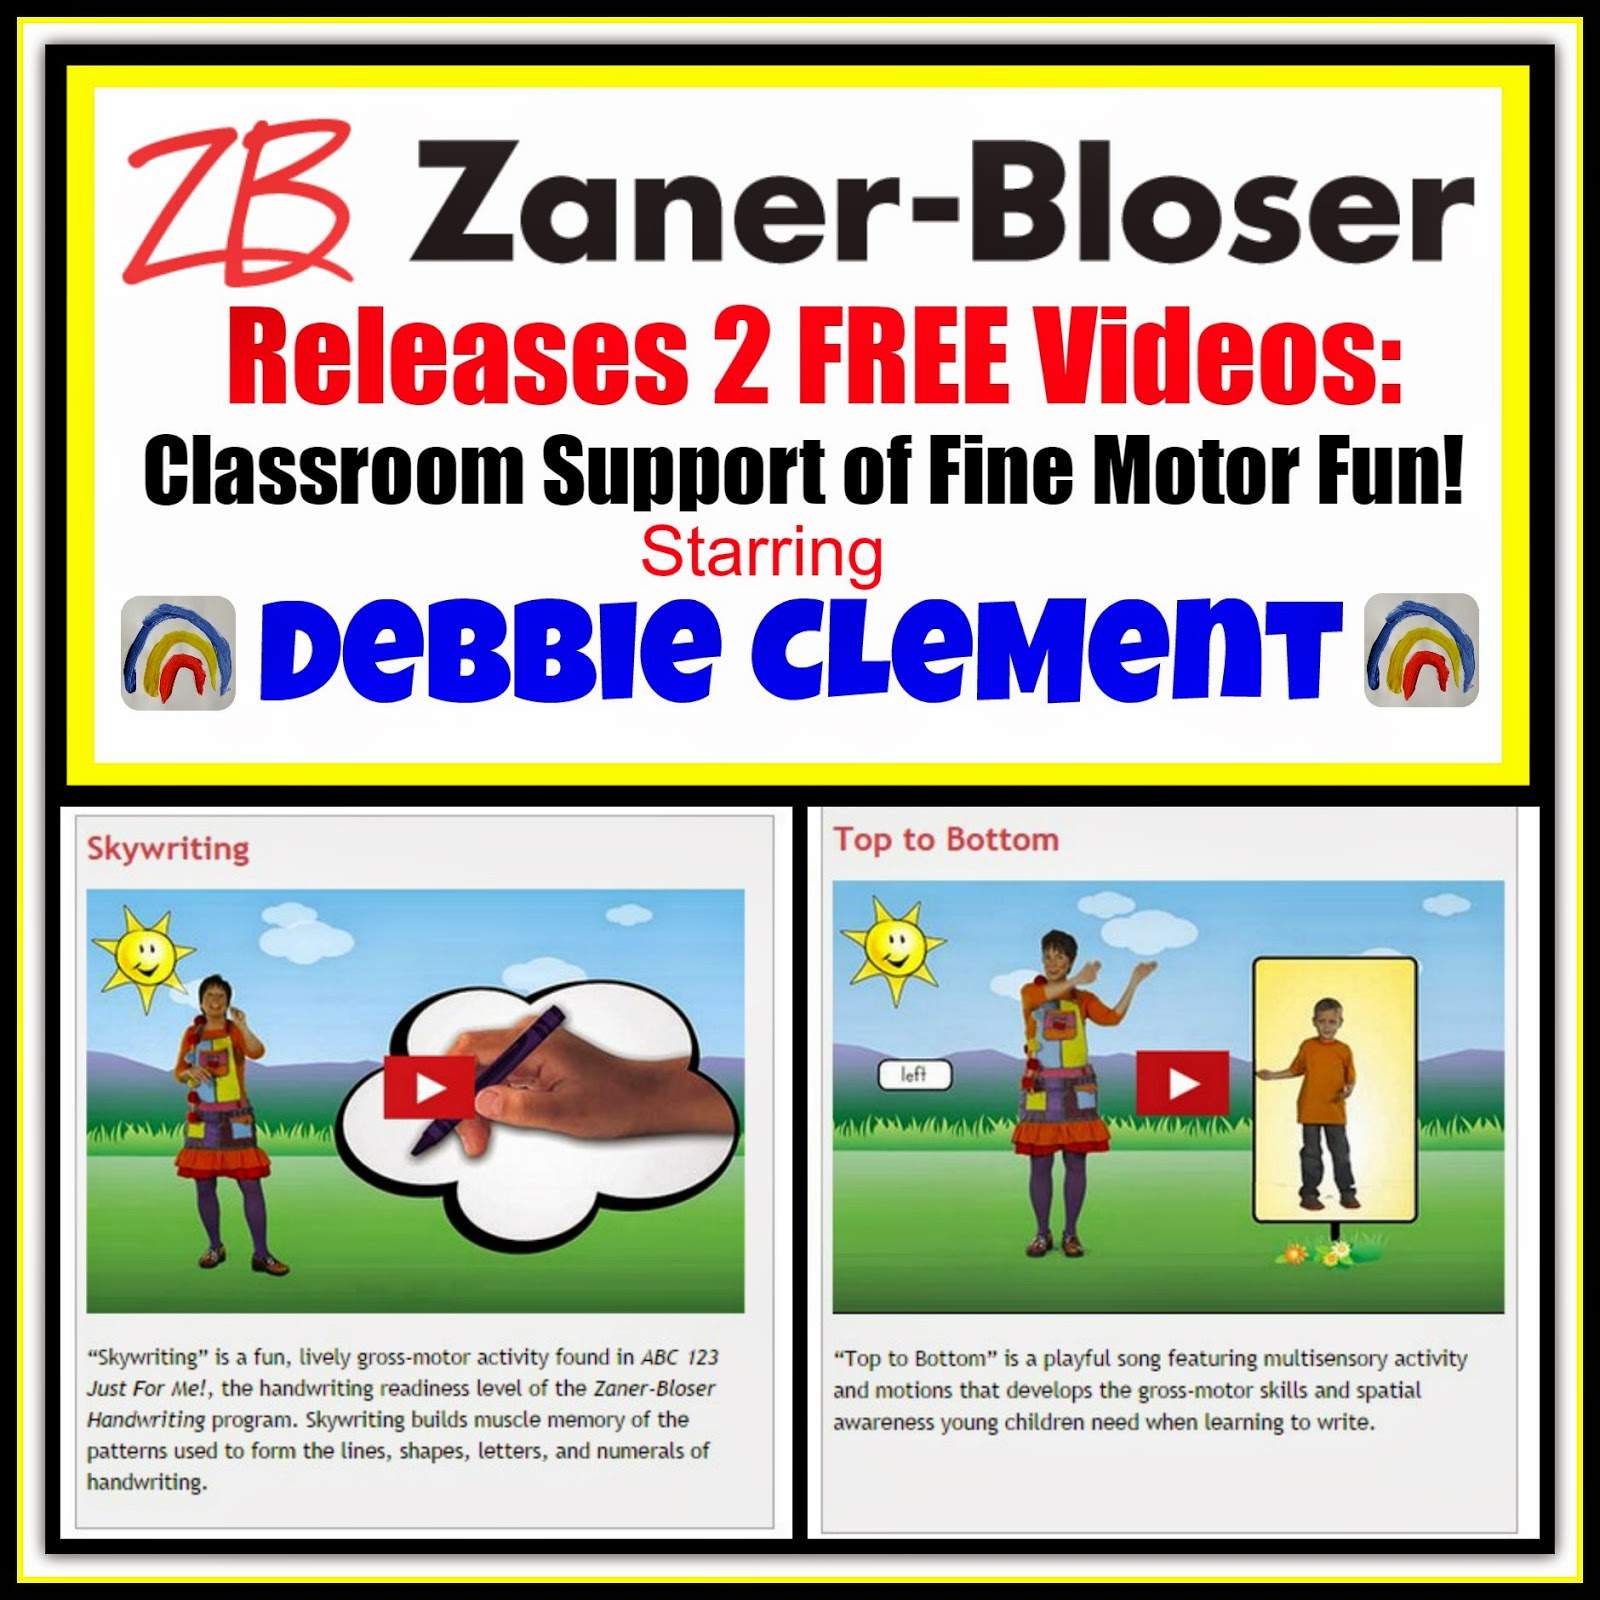 Zaner-Bloser presents Debbie Clement Singing + Dancing for Fine Motor Fun!